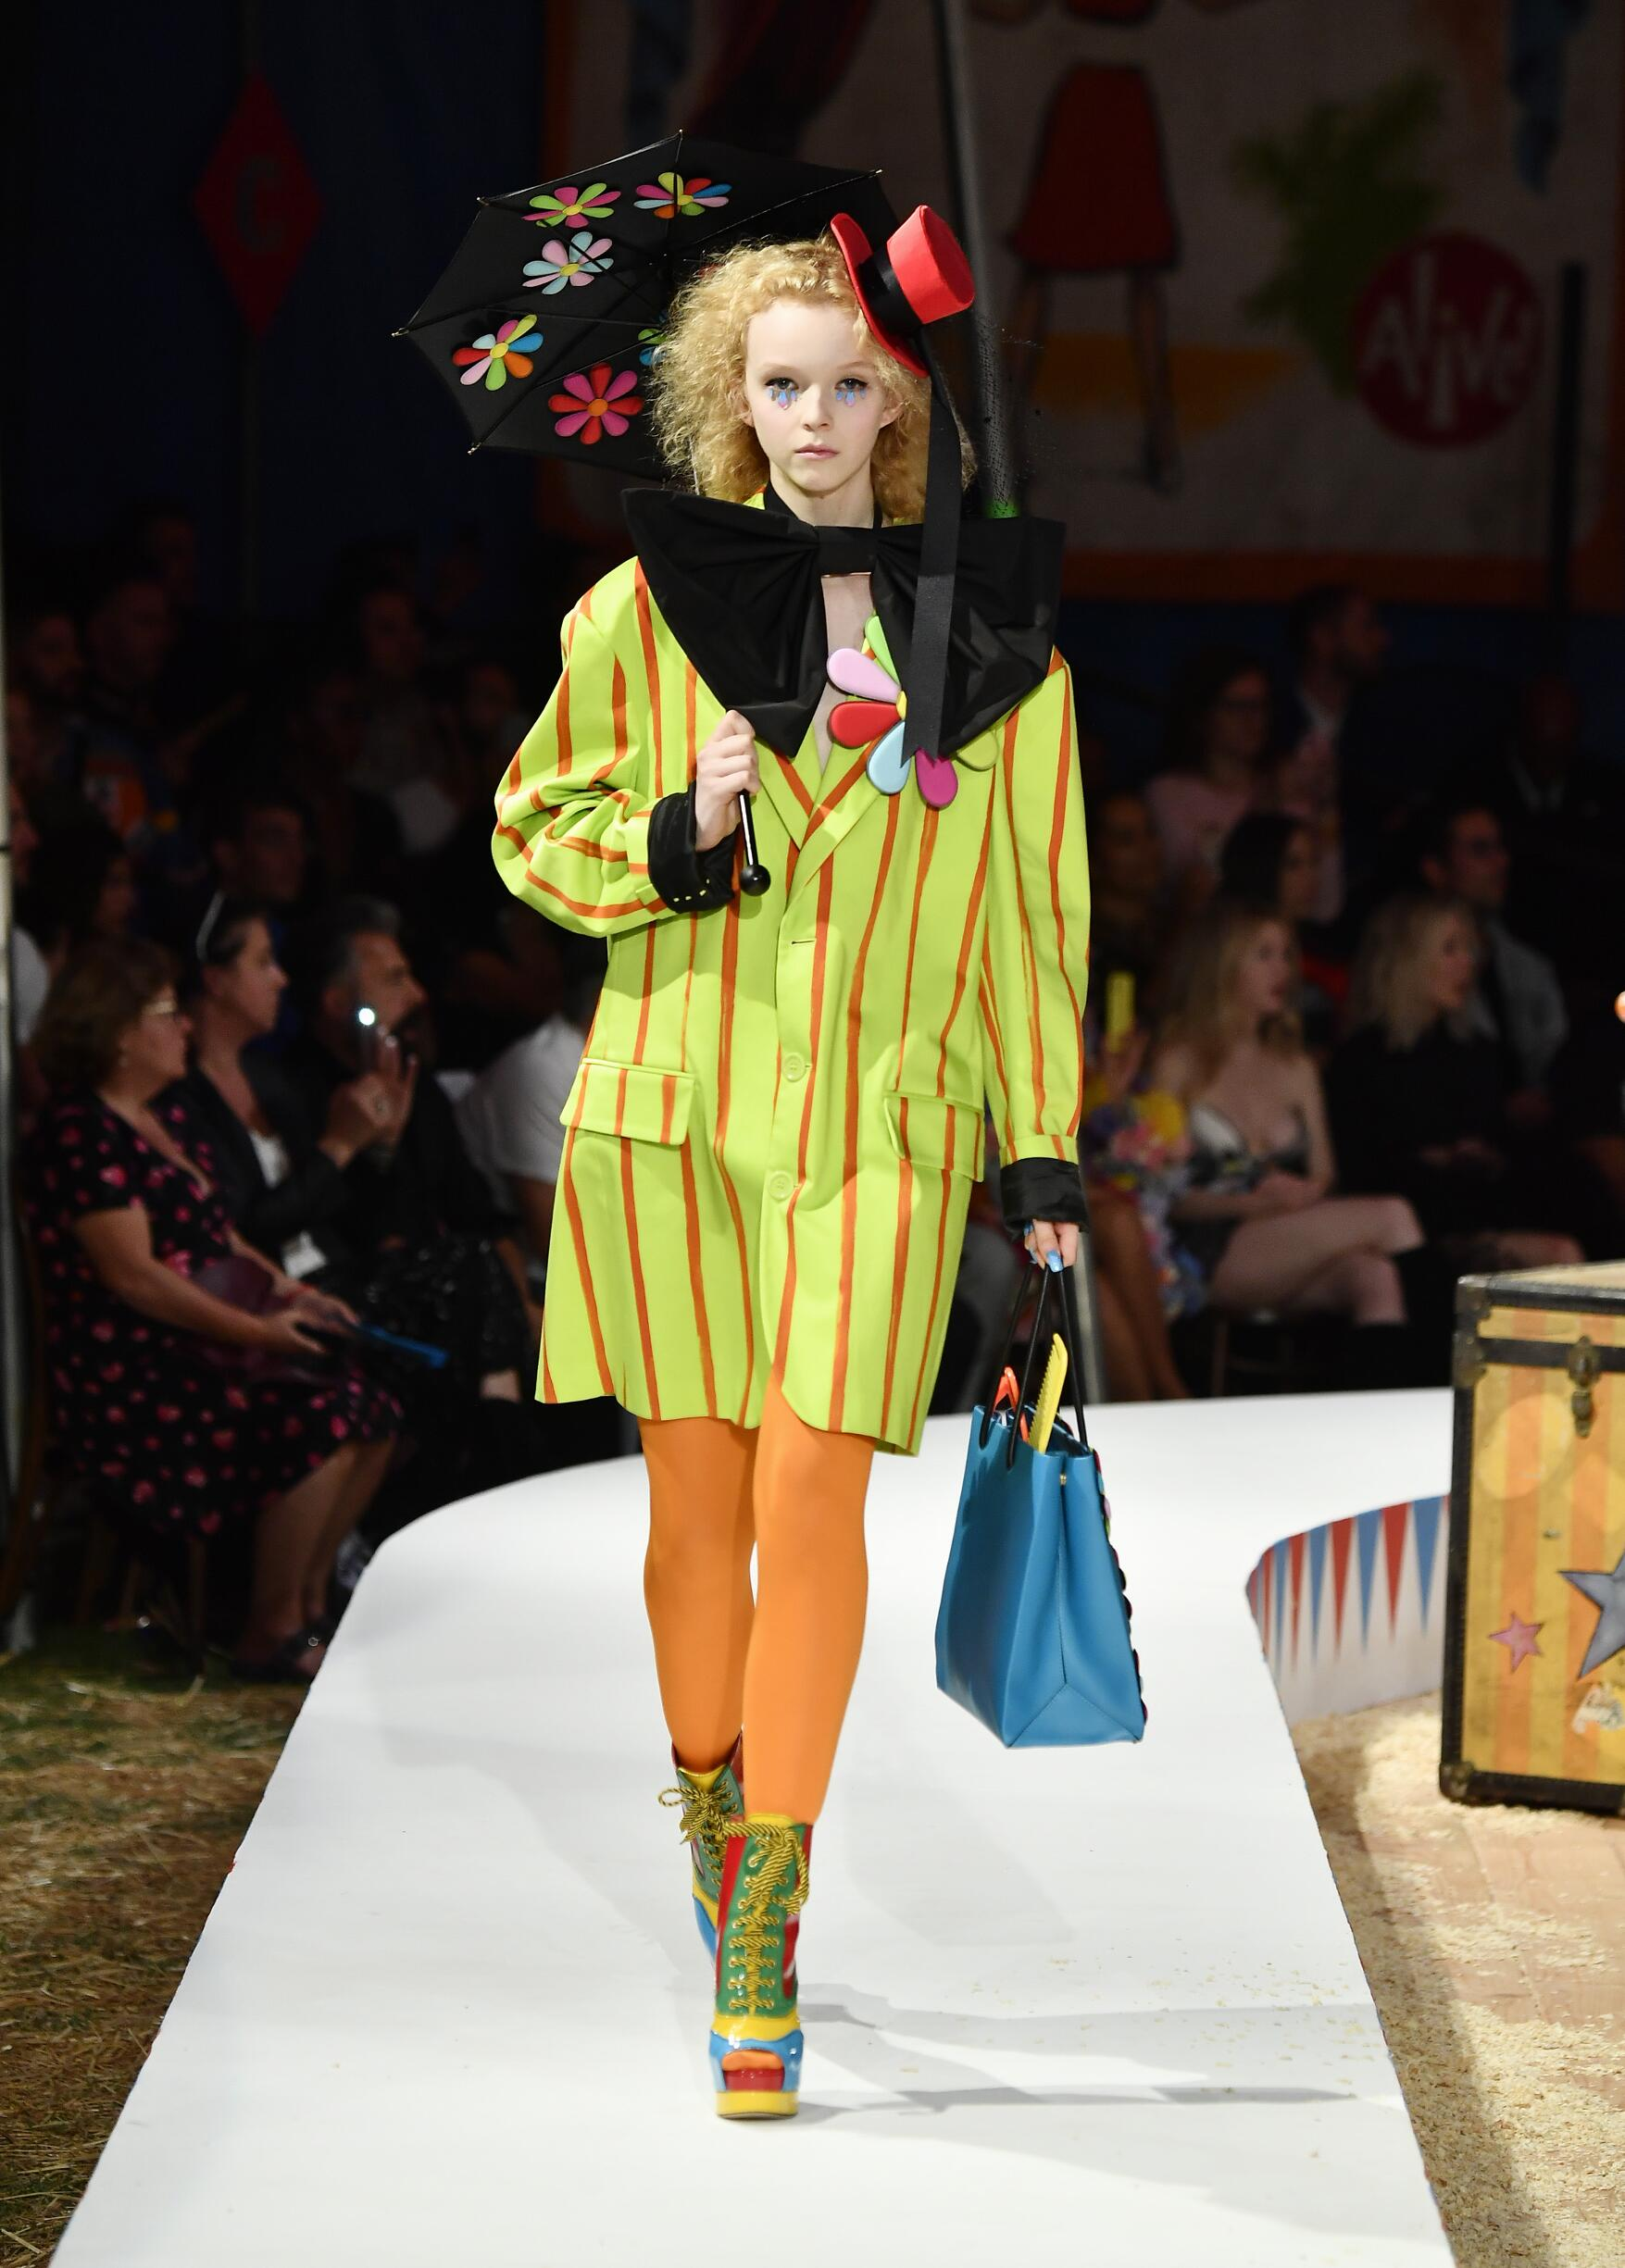 Moschino Spring Summer 2019 Menswear and Women's Resort Collection Look 30 Los Angeles